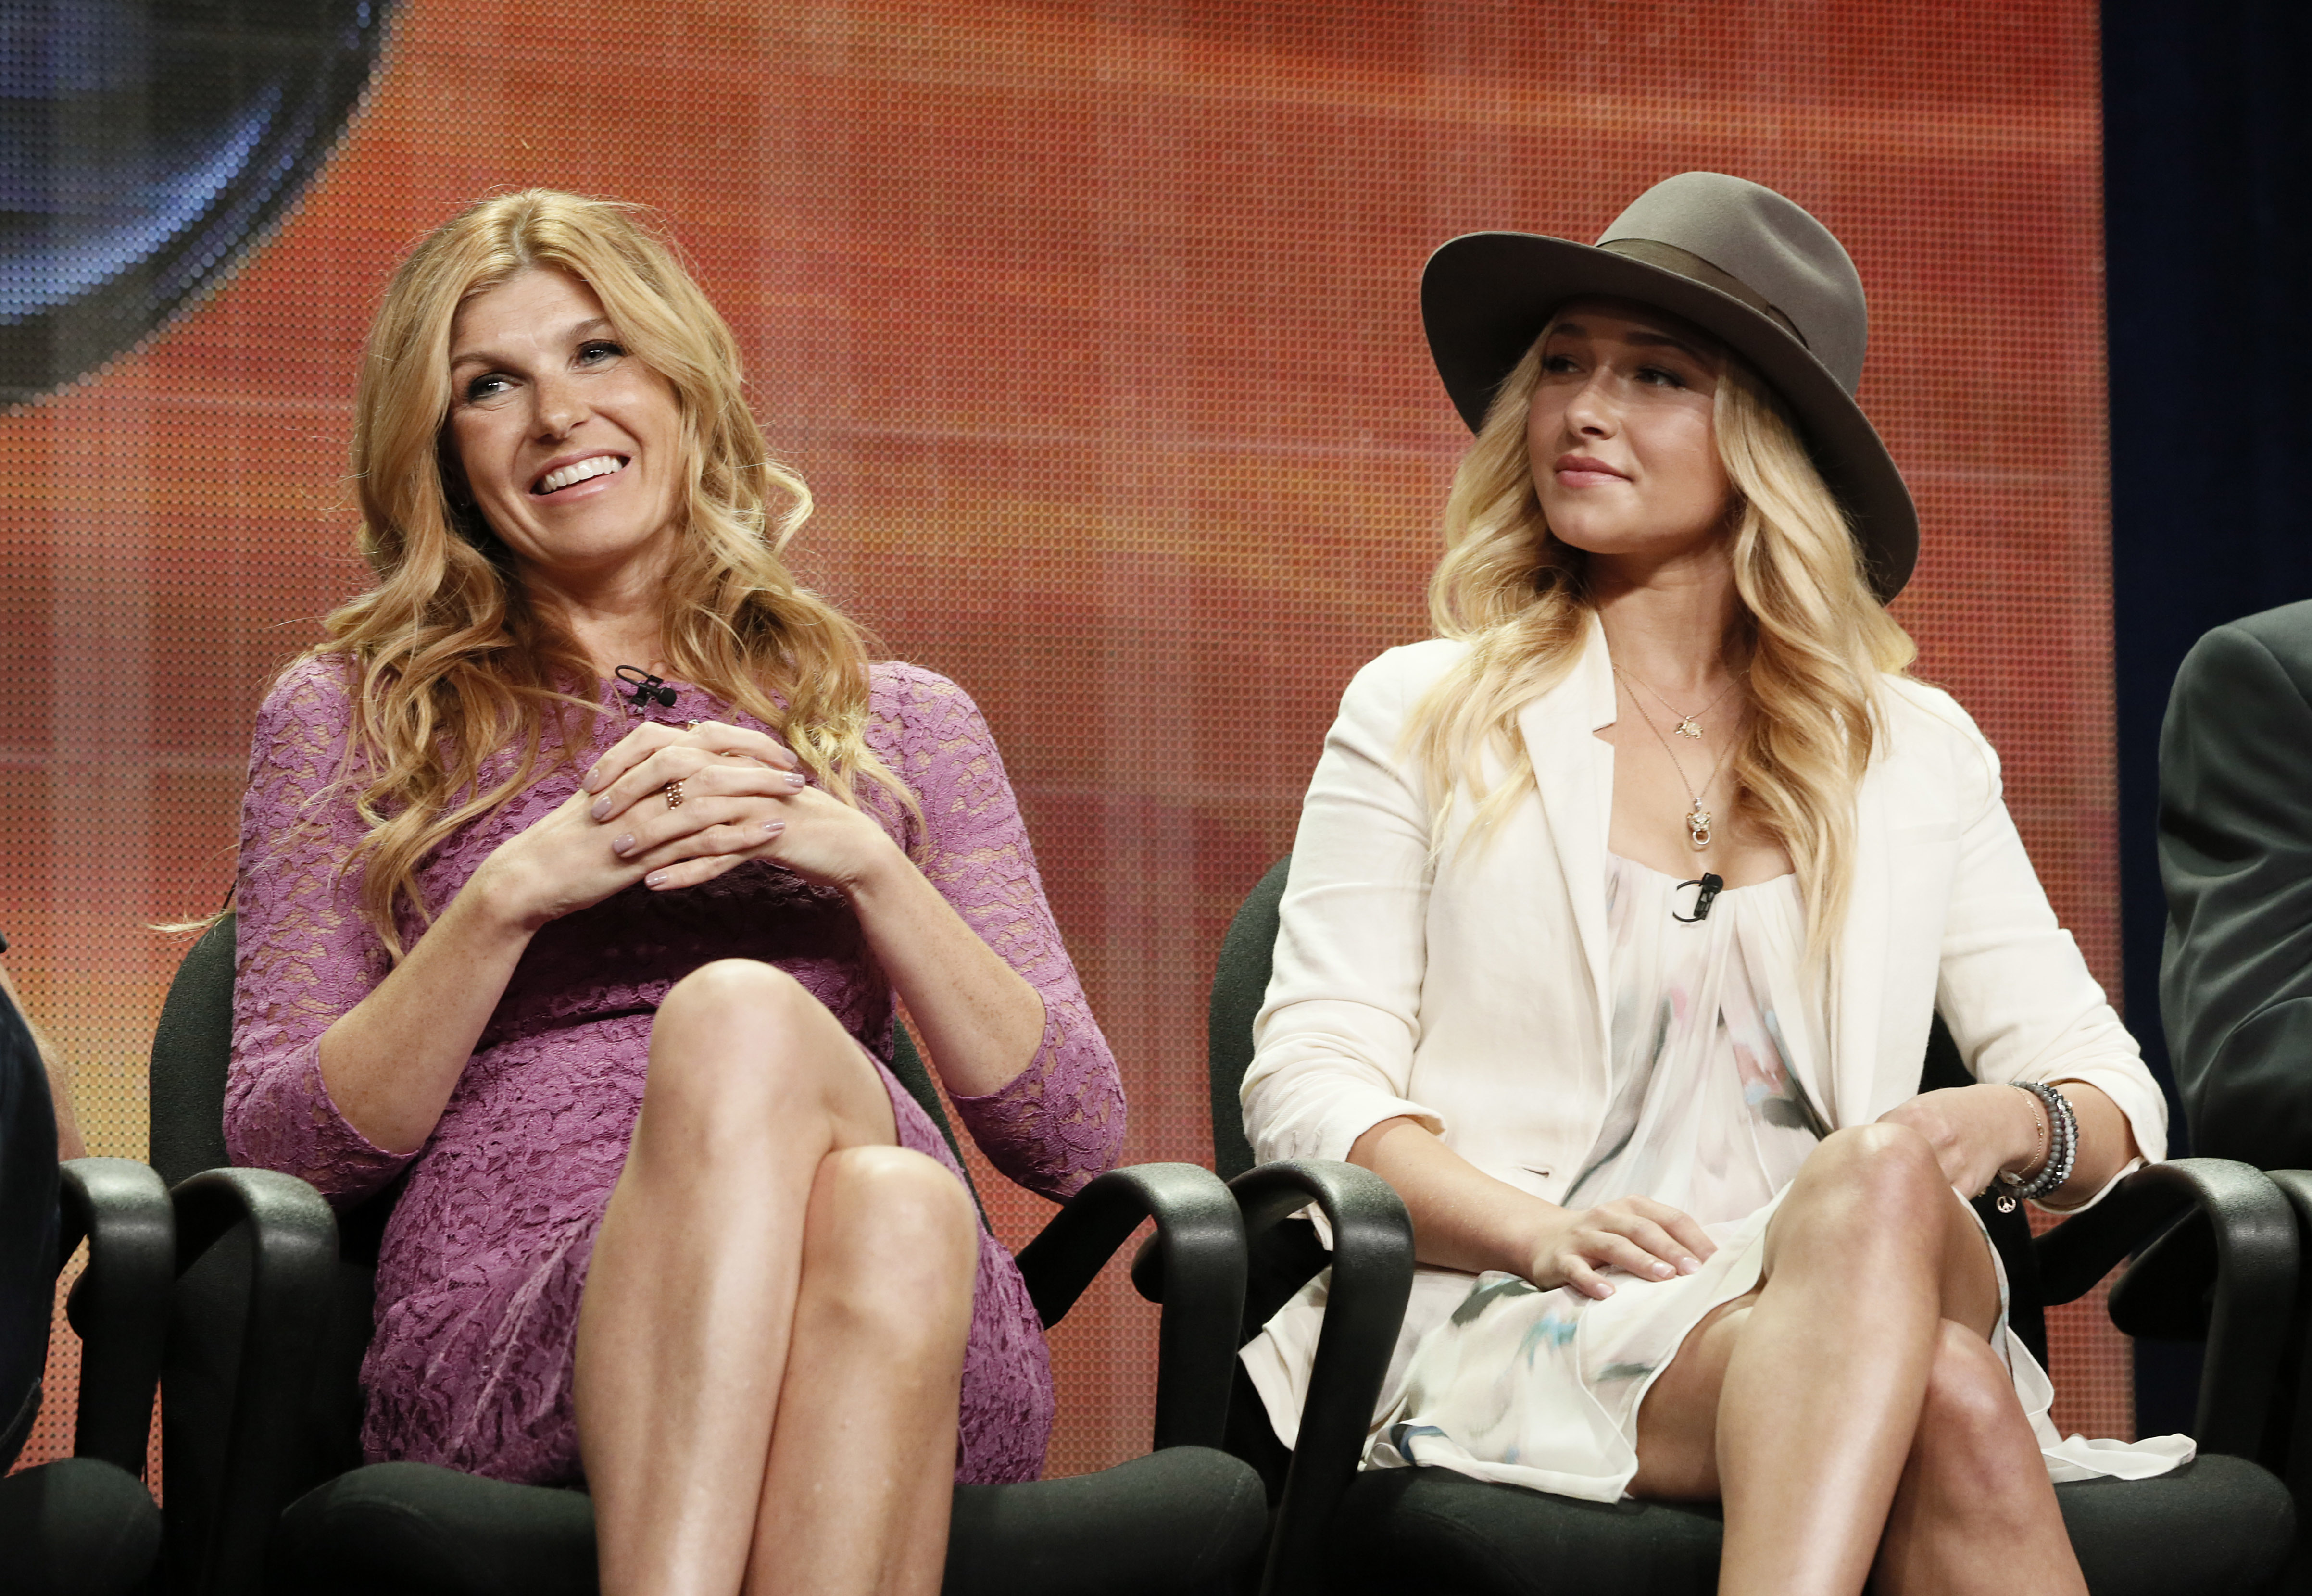 FILE - In this July 27, 2012 file photo, cast members Connie Britton and Hayden Panettiere attend the &quot;Nashville&quot; panel at the Disney ABC TCA in Beverly Hills, Calif. (Photo by Todd Williamson/Invision/AP, File)<p></p>